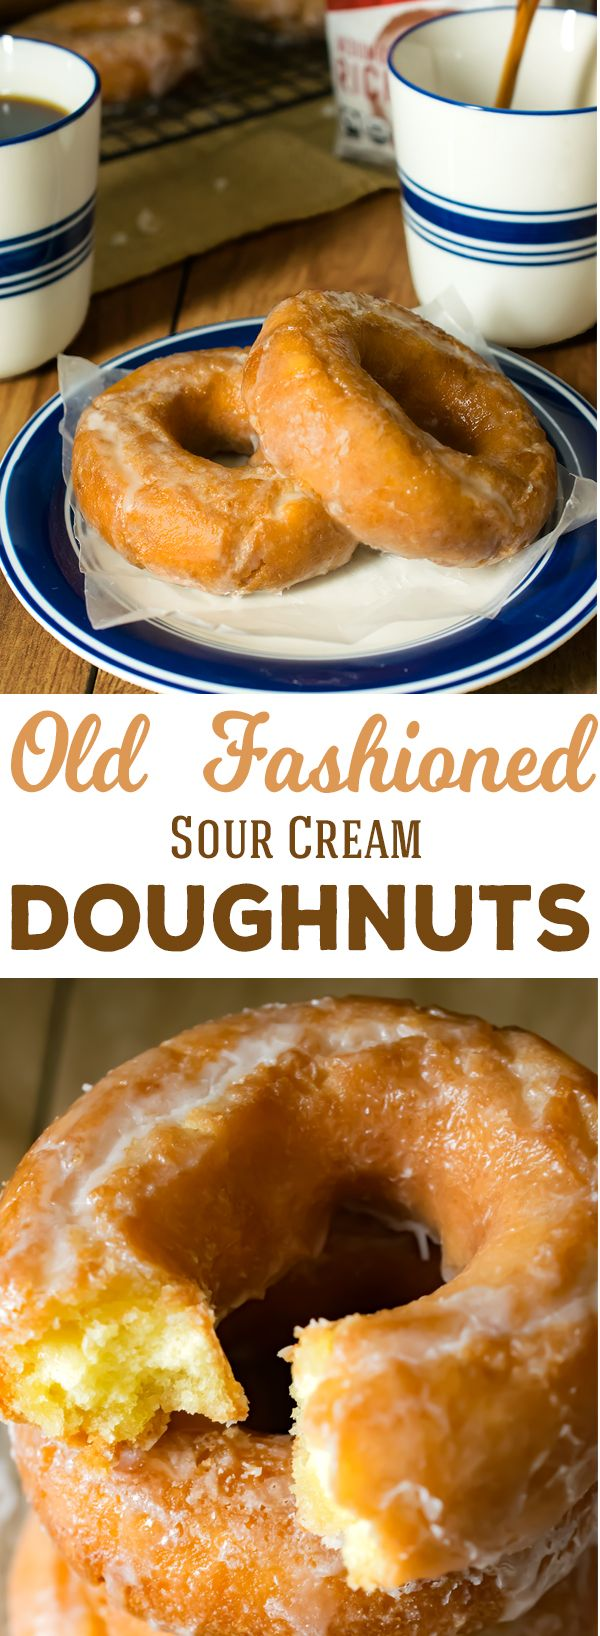 Classic Sour Cream Doughnuts are the perfect companion to coffee. Soft and cakey on the inside with a flakey sweet glaze on the outside, these old fashioned doughnuts are just like the doughnut shop!